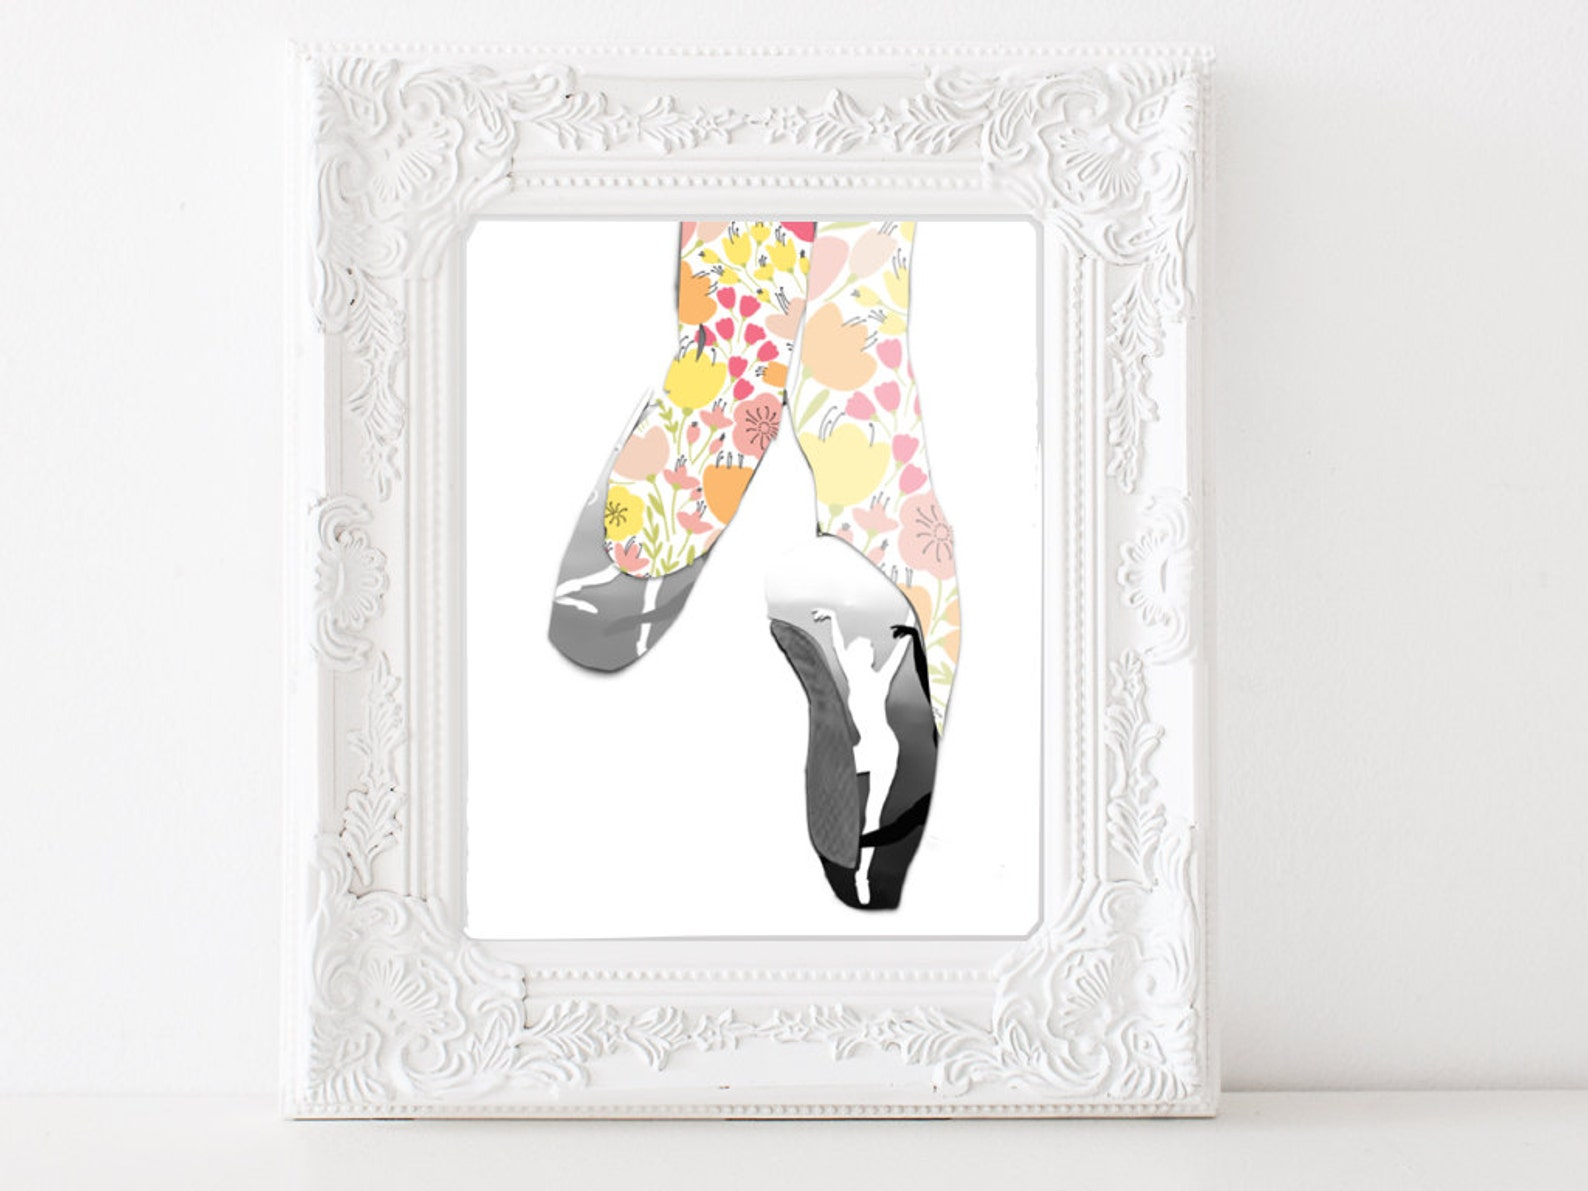 digital ballet shoe print pointe shoe ballet decor home decor printable wall art prints dance print wall art ballet studio insta